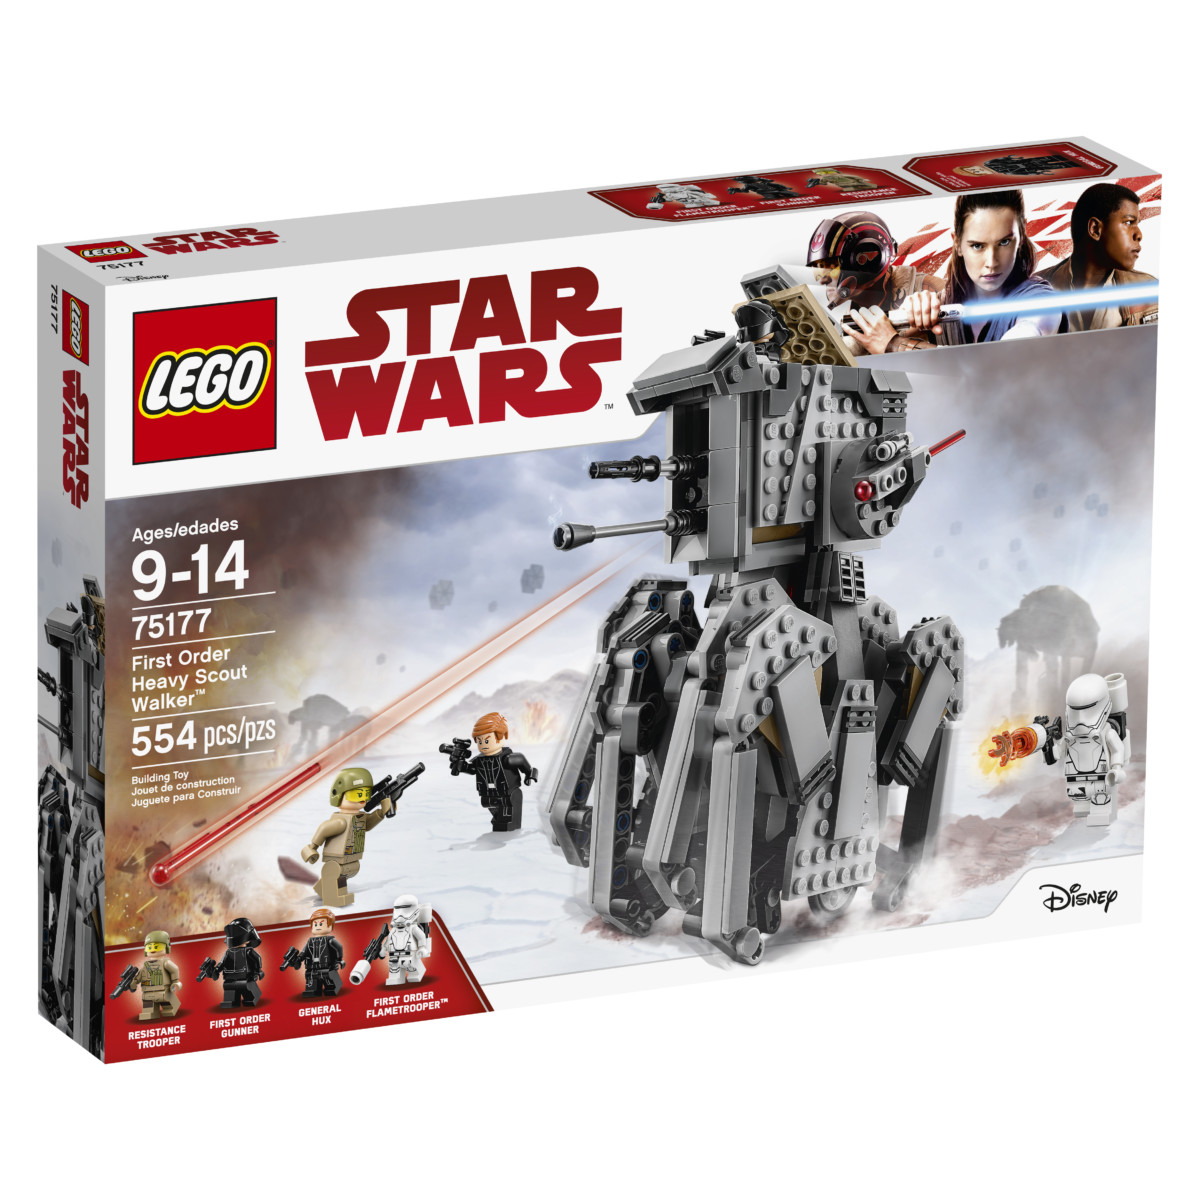 Today's Force Friday II LEGO Releases for Star Wars: The Last Jedi  #ForceFriday 4